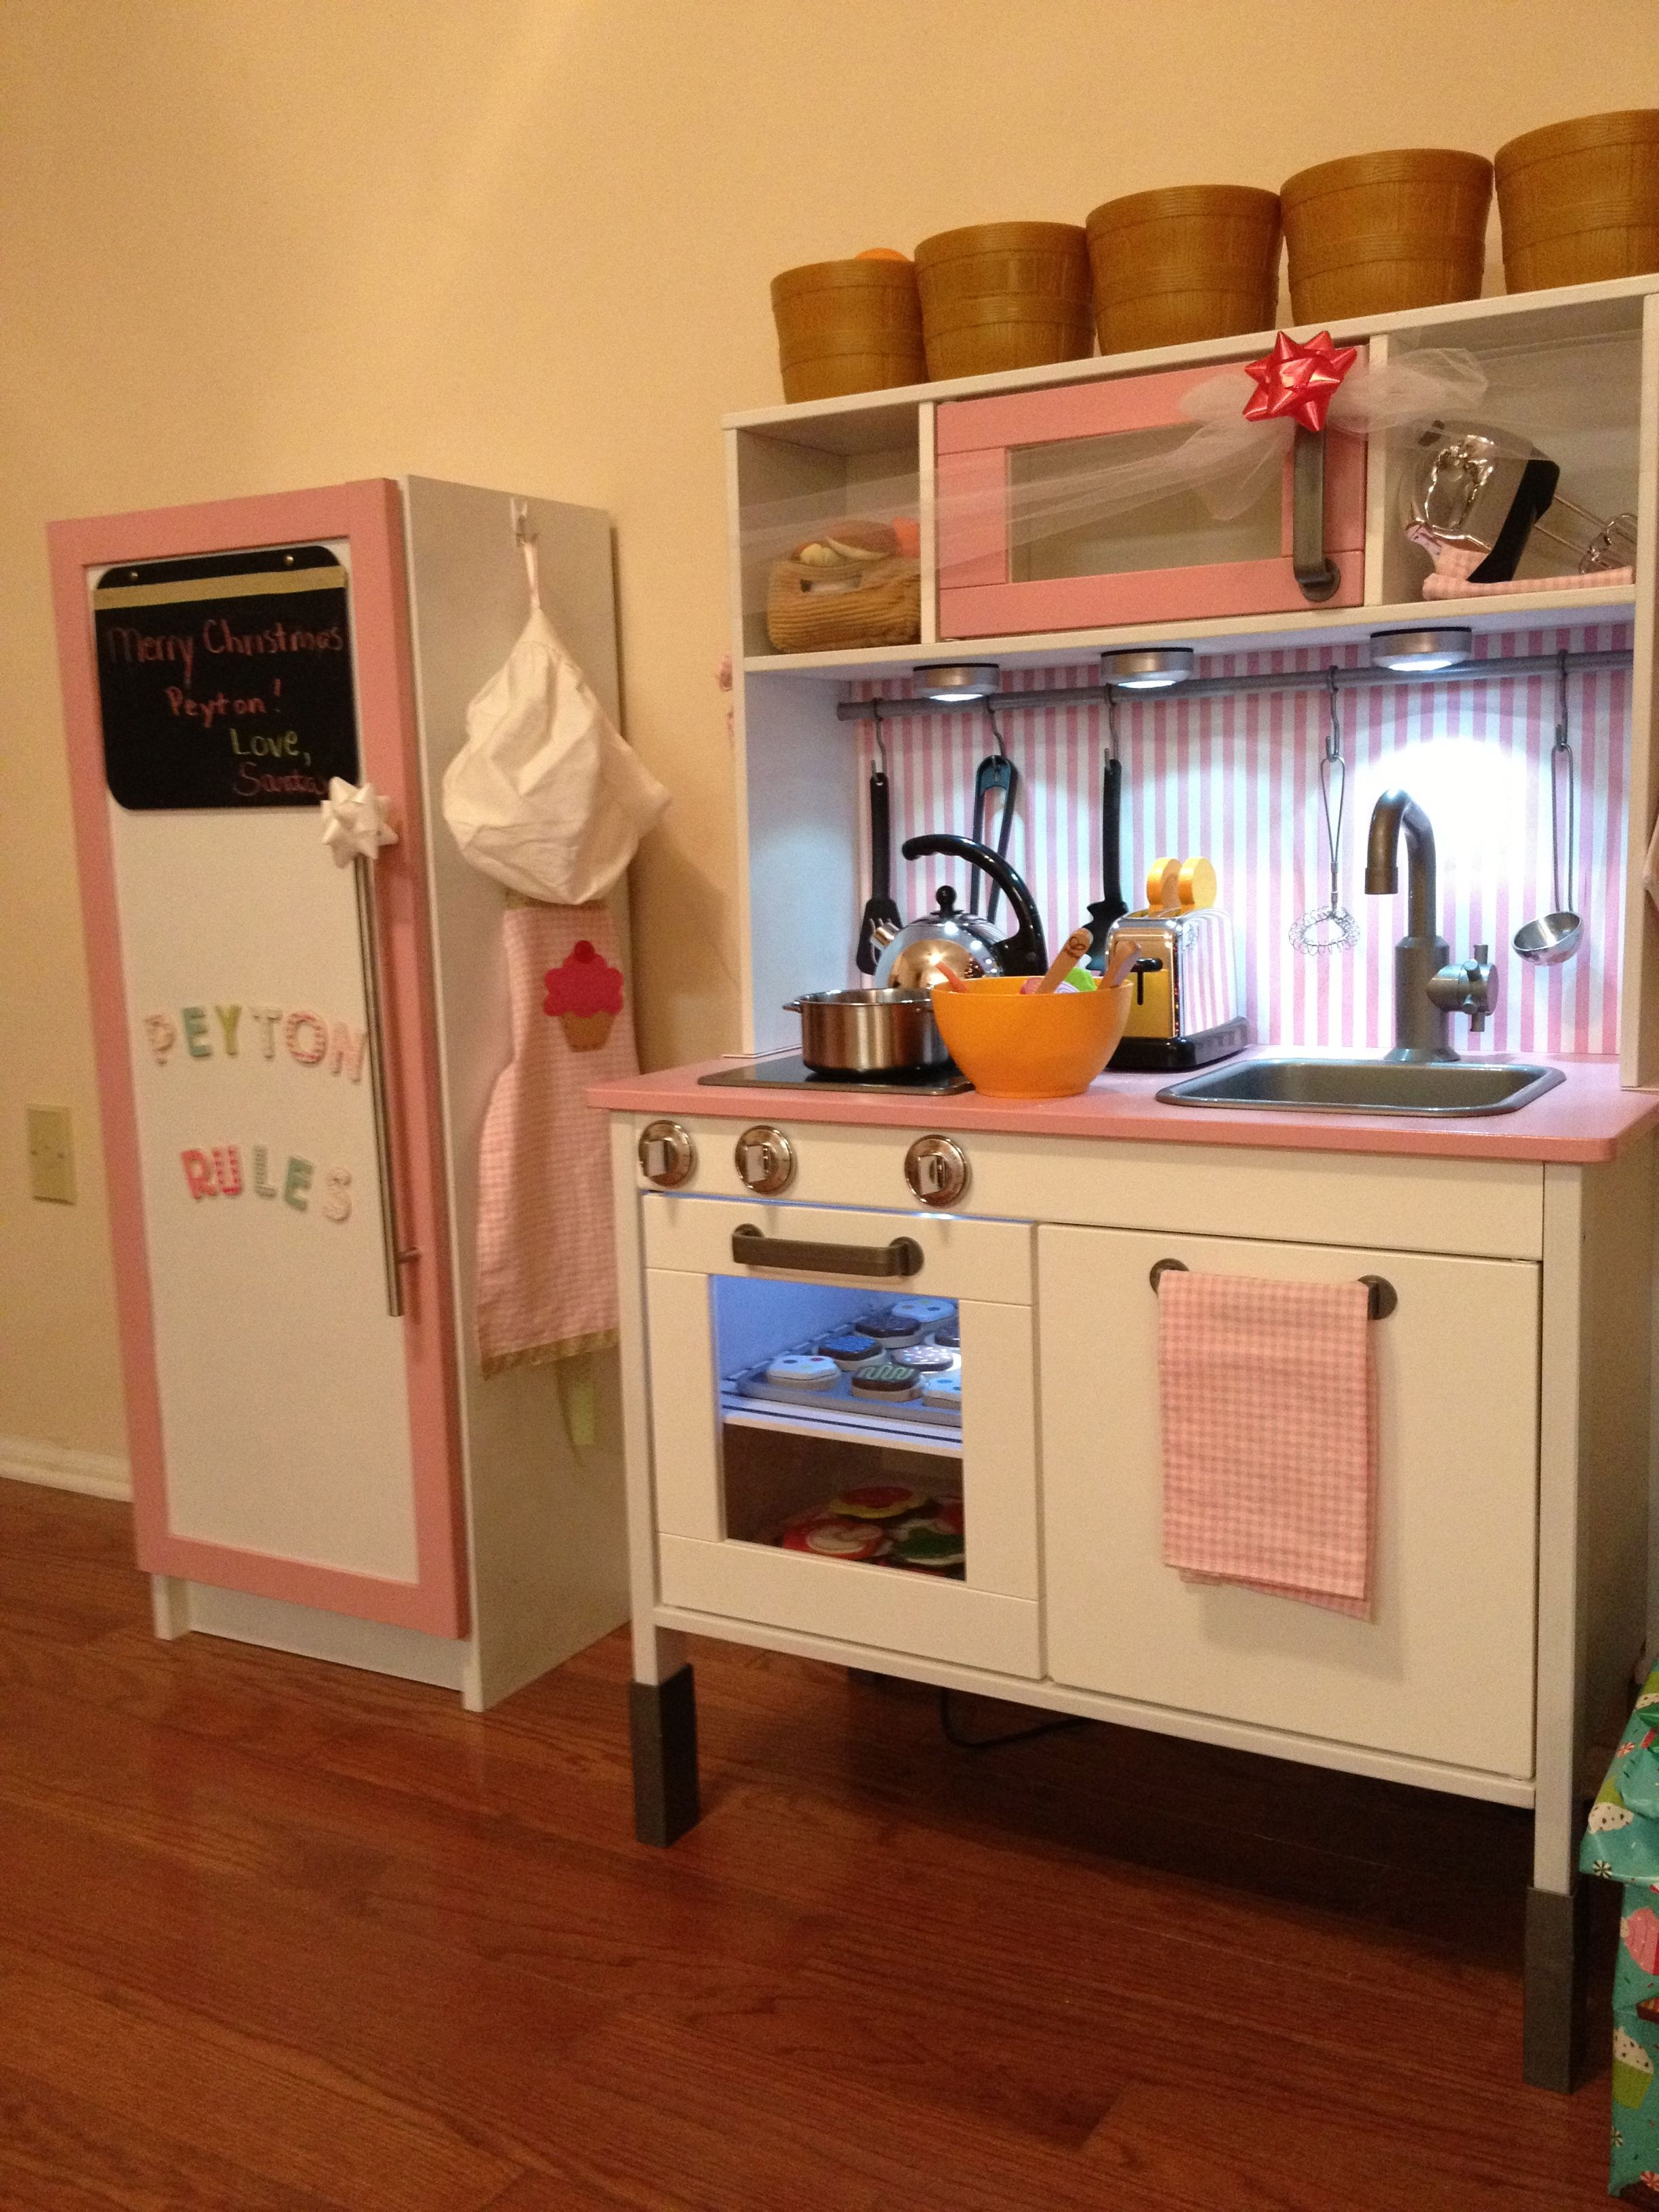 The 5 best DIY play kitchens Ikea play kitchen, Plays